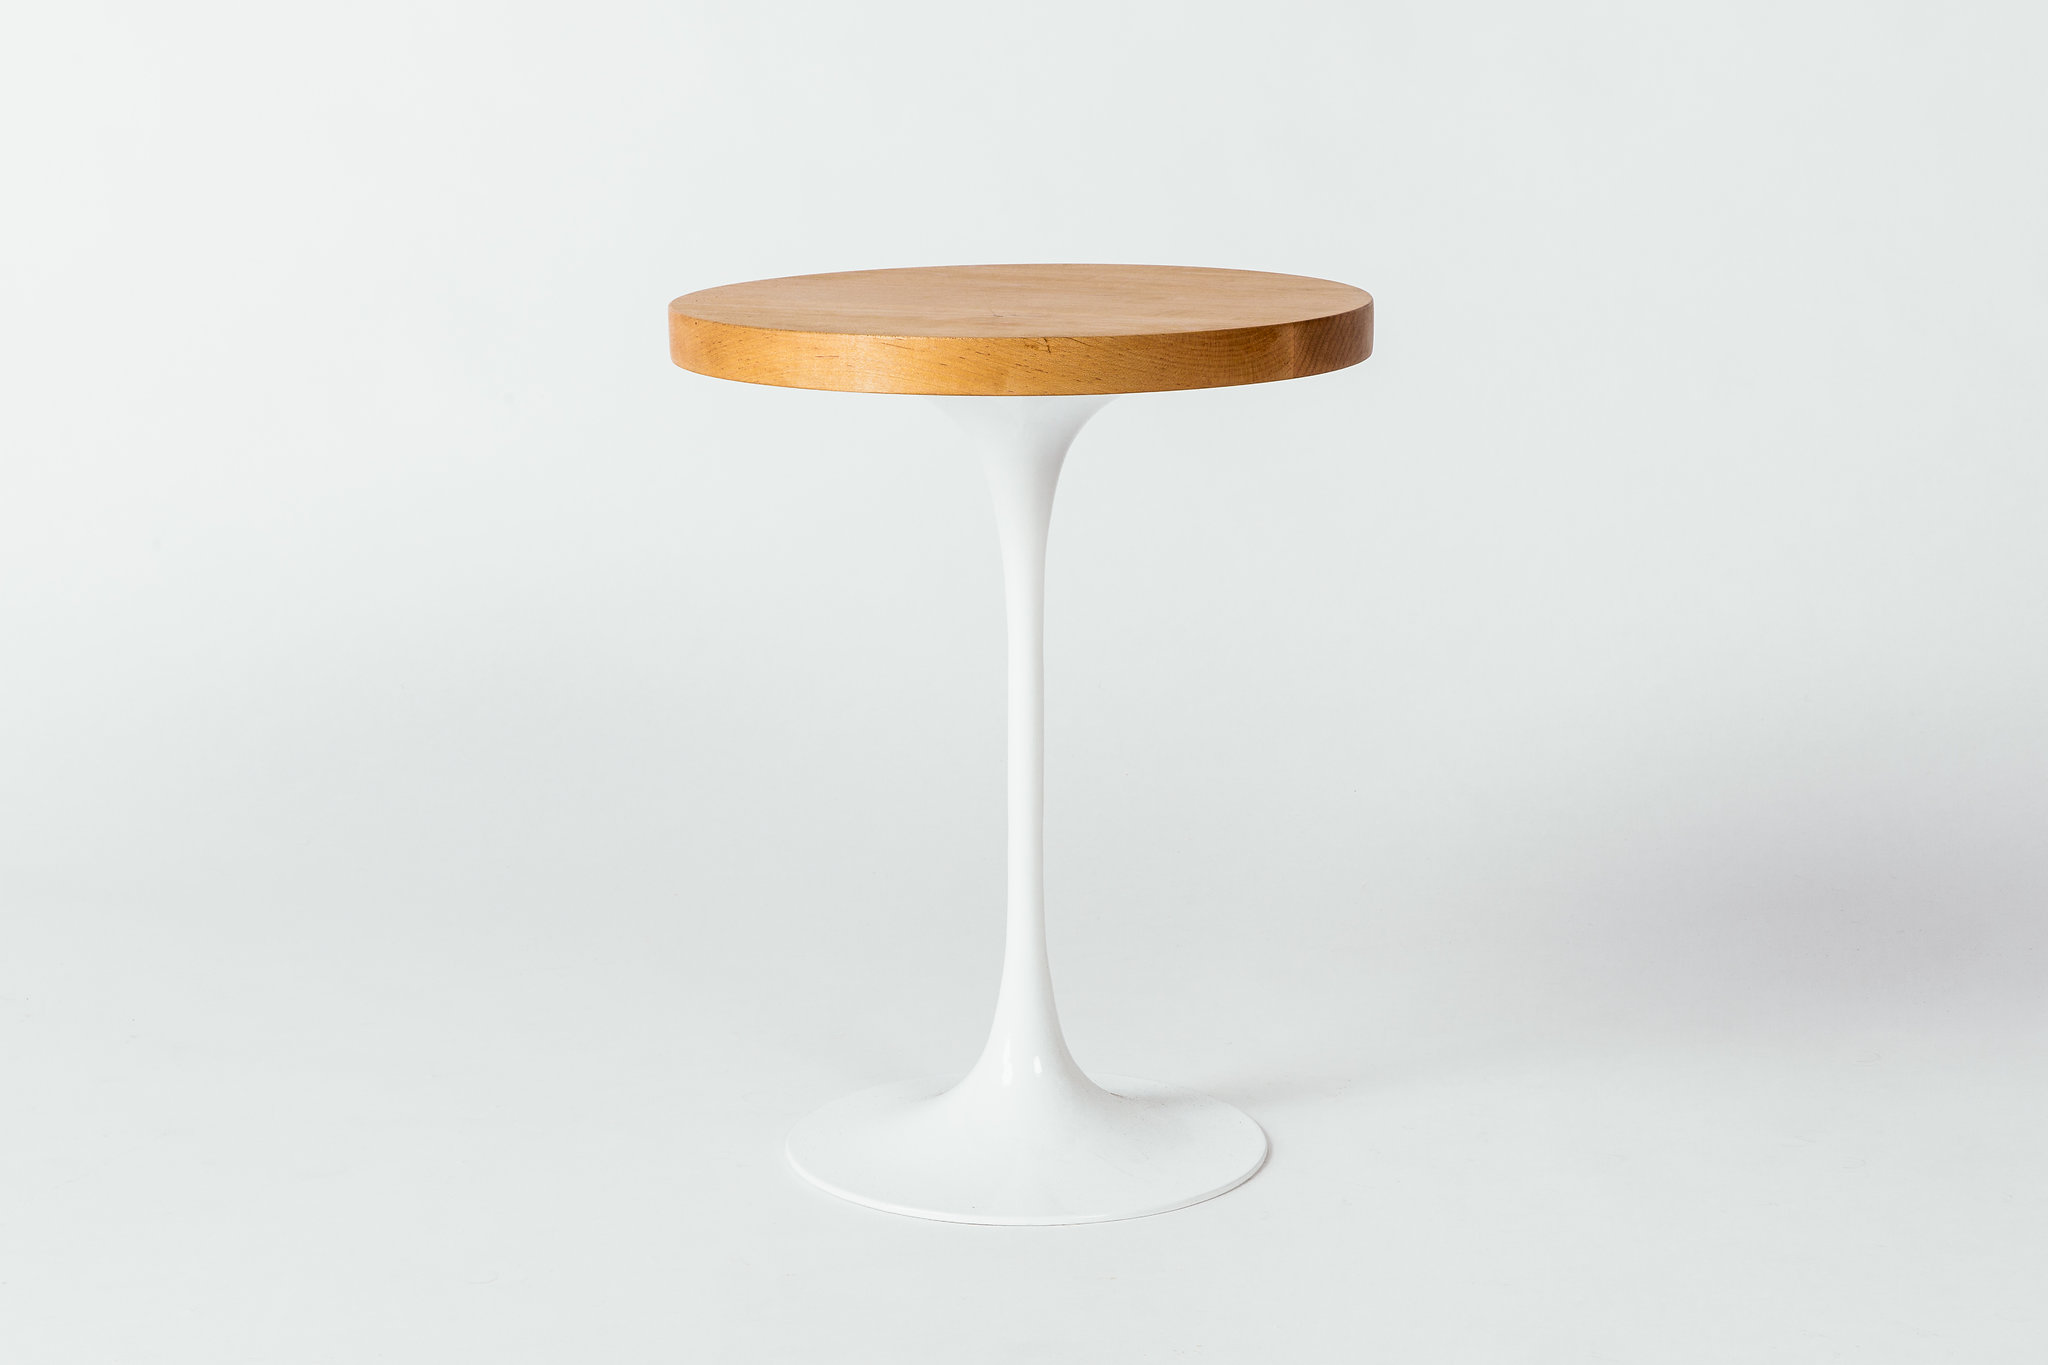 Small Industrial Tulip Table